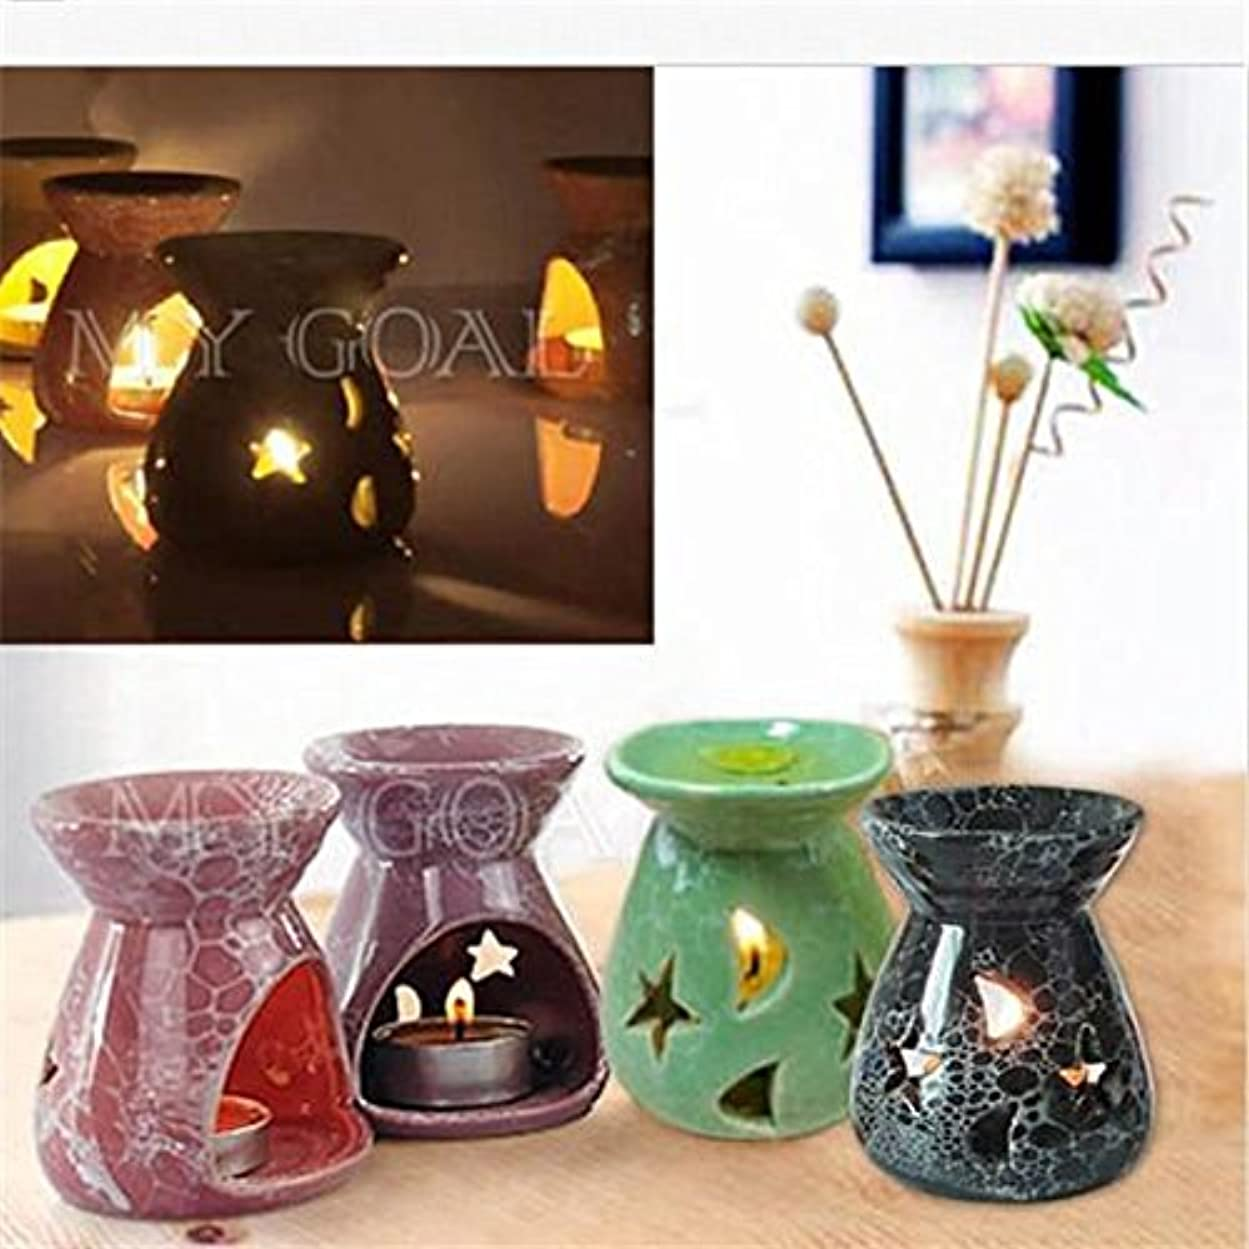 タッチ耕す観察Hot Sale Ceramic Fragrance Oil Burners Lavender Aromatherapy Scent Candle Essential Gift Olio In ceramica Candle Natale Regalo